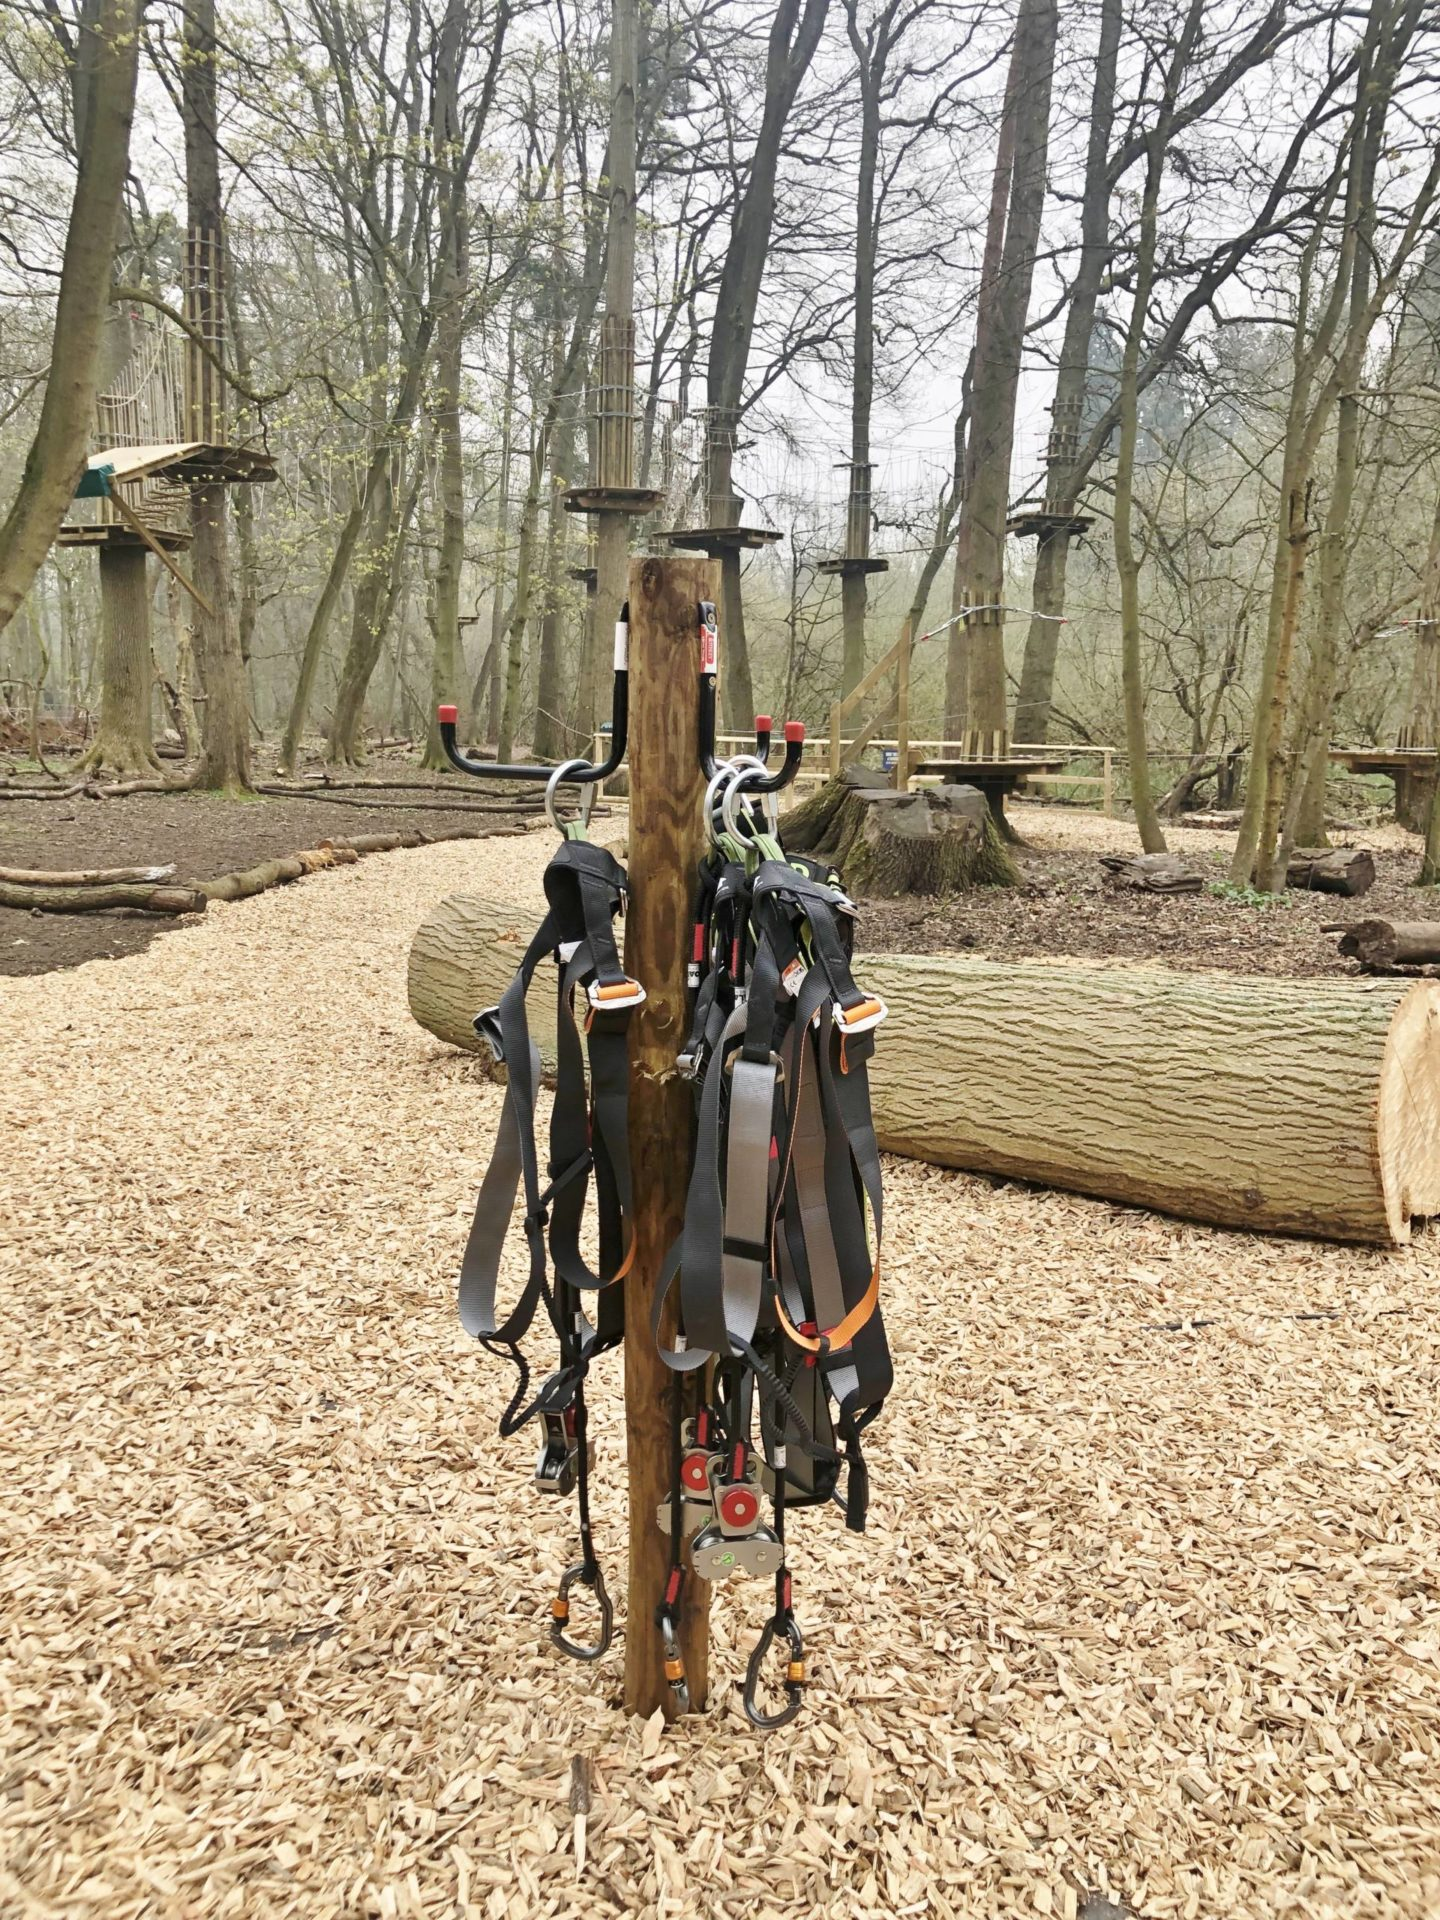 Go Ape Harnesses on wooden pole